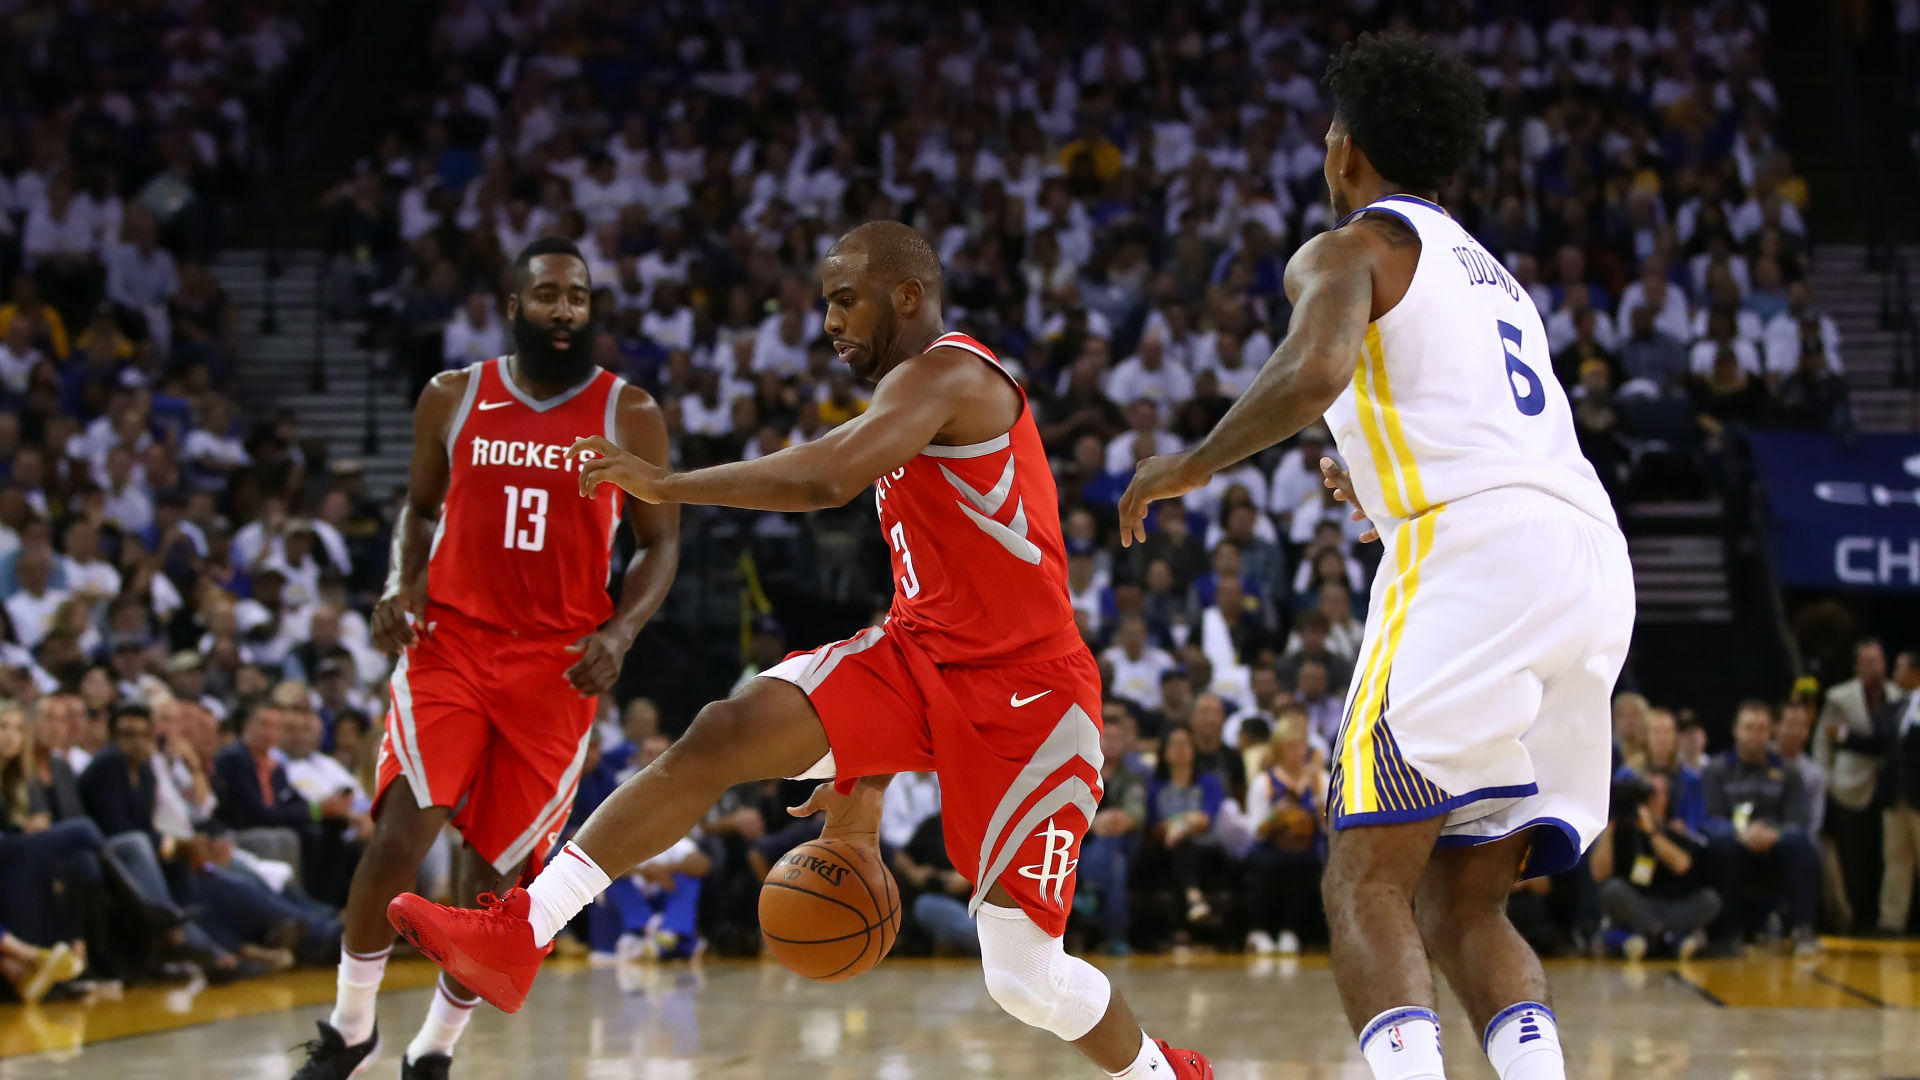 Chris Paul's brother almost ejected from Rockets-Jazz game by mistake